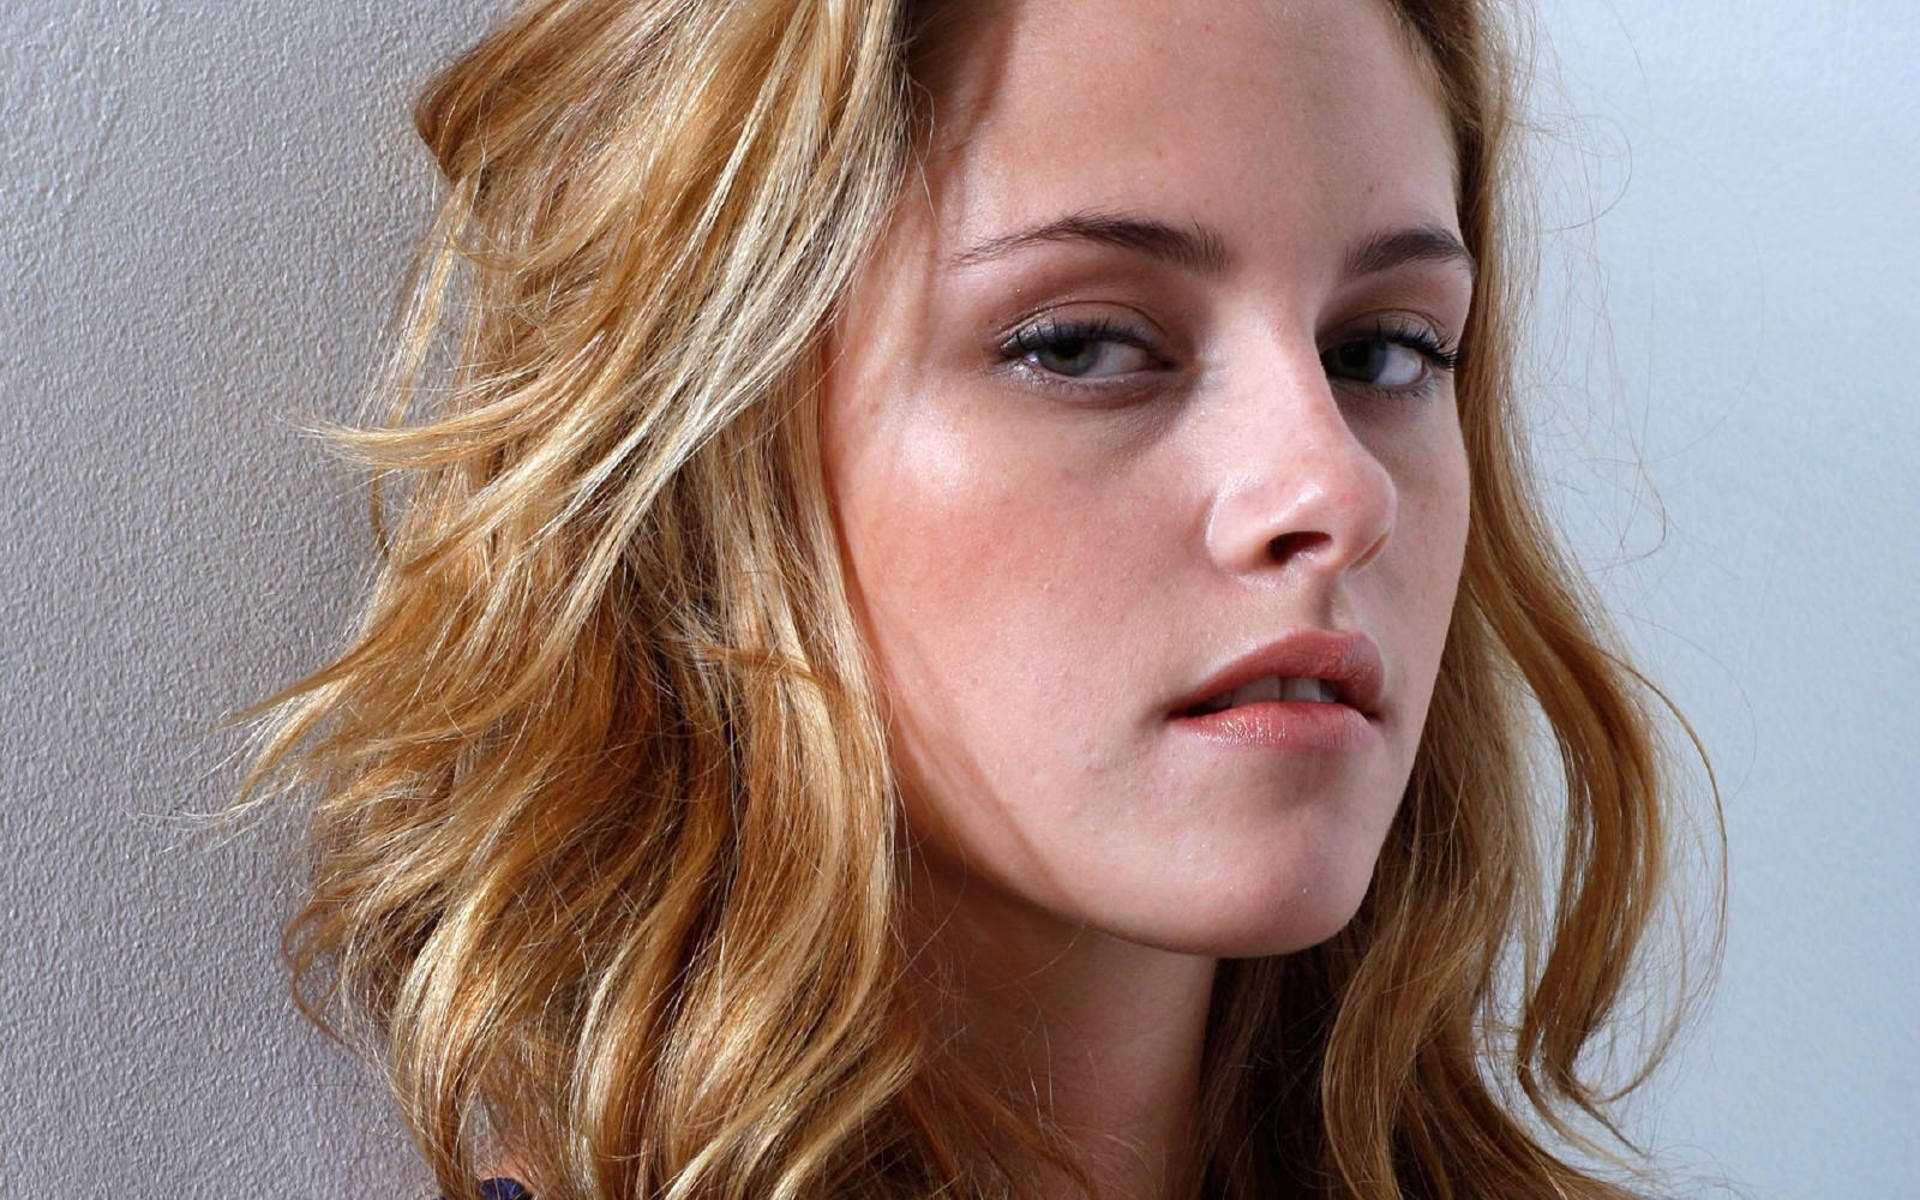 Wallpaper Cinema Video Kristen Stewart portrait regard intense